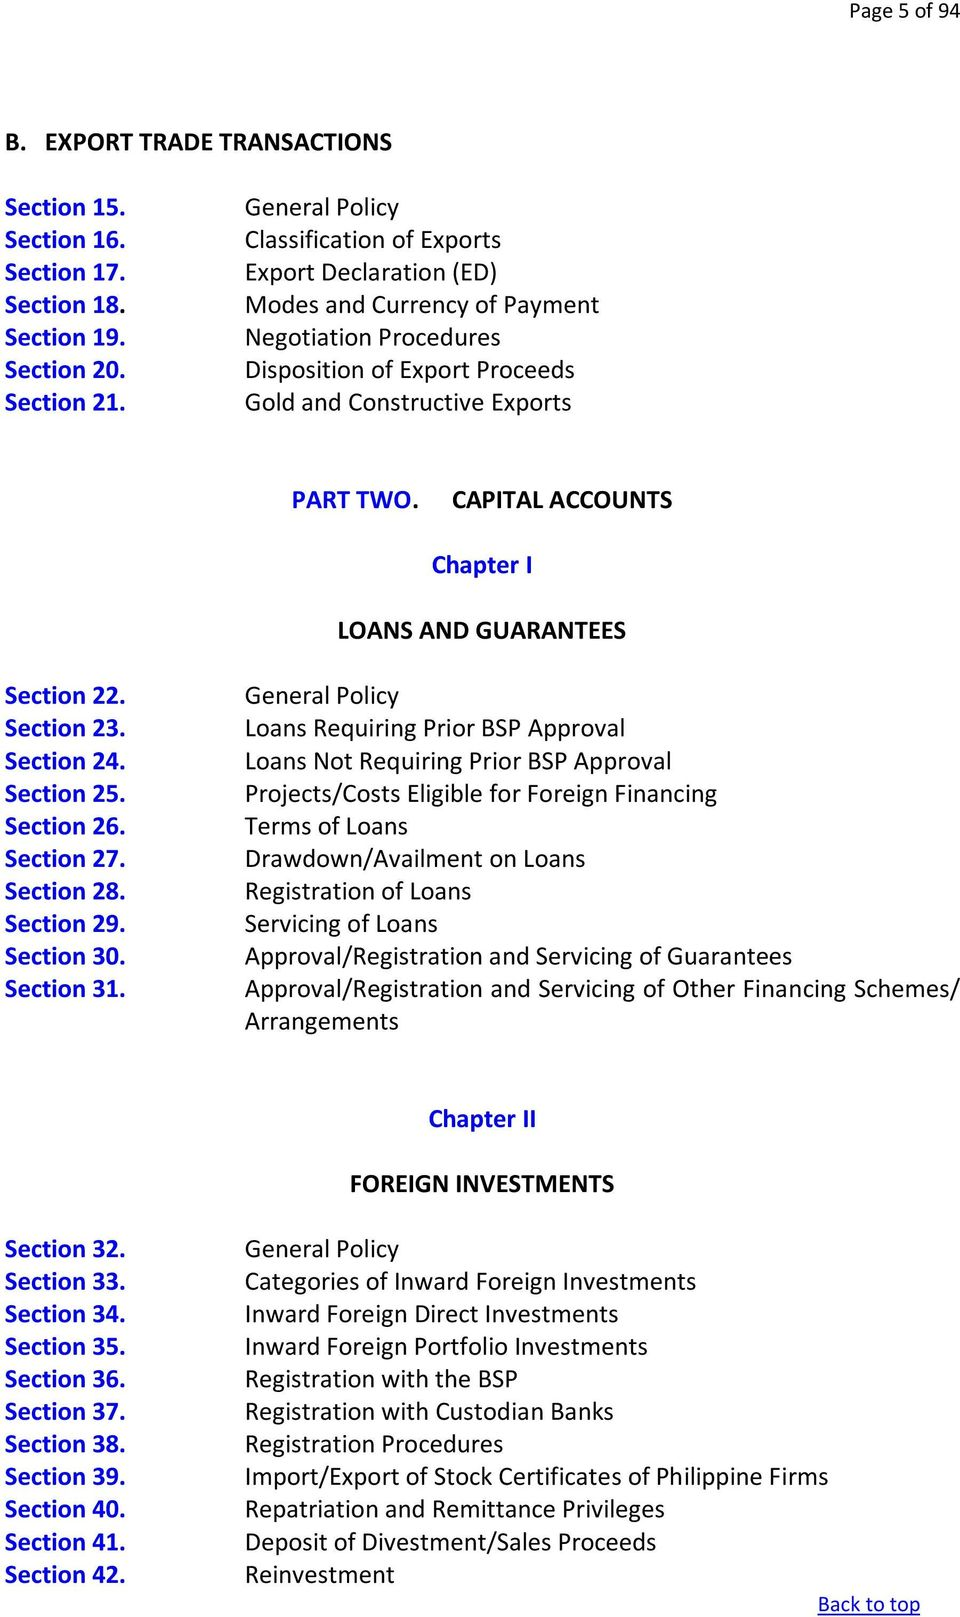 CAPITAL ACCOUNTS Chapter I LOANS AND GUARANTEES Section 22. Section 23. Section 24. Section 25. Section 26. Section 27. Section 28. Section 29. Section 30. Section 31.